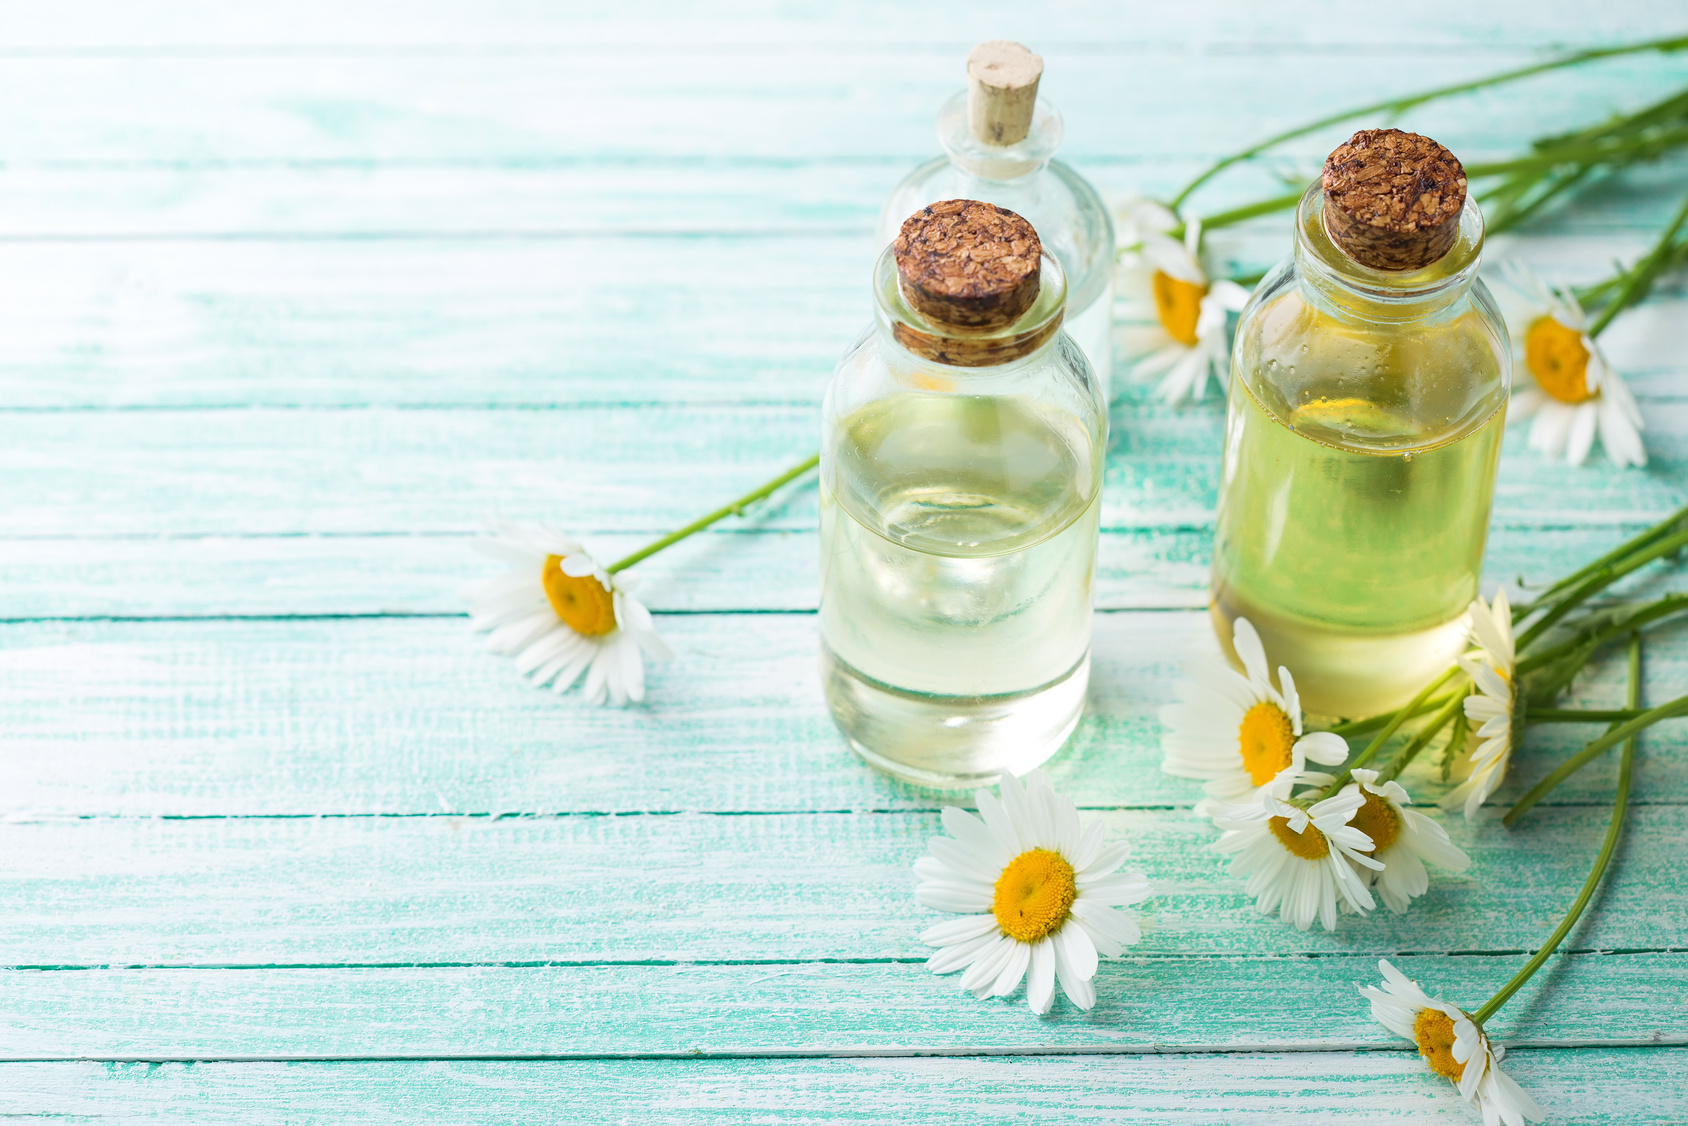 essential oils +sacred wellness - purity + potency matter